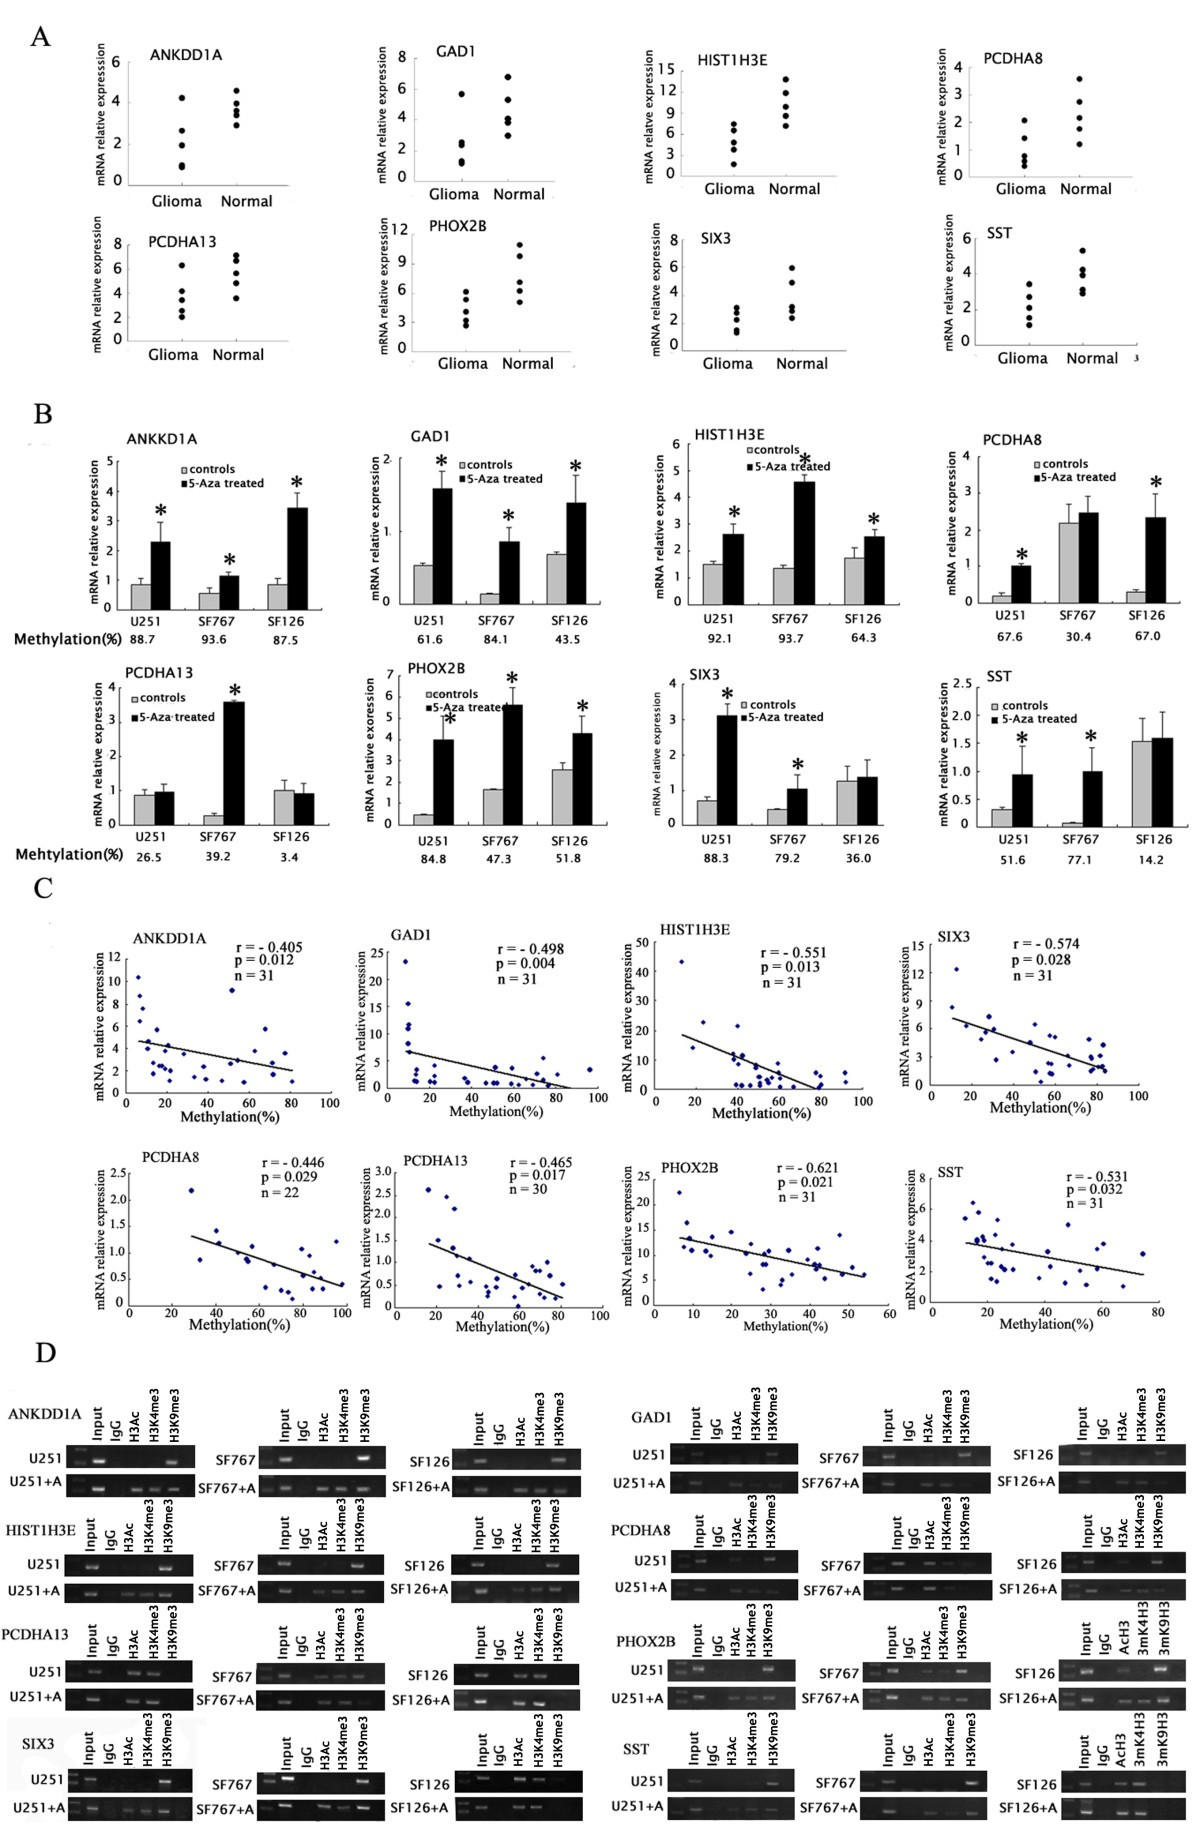 MiR-185 Targets the DNA Methyltransferases 1 and Regulates Global